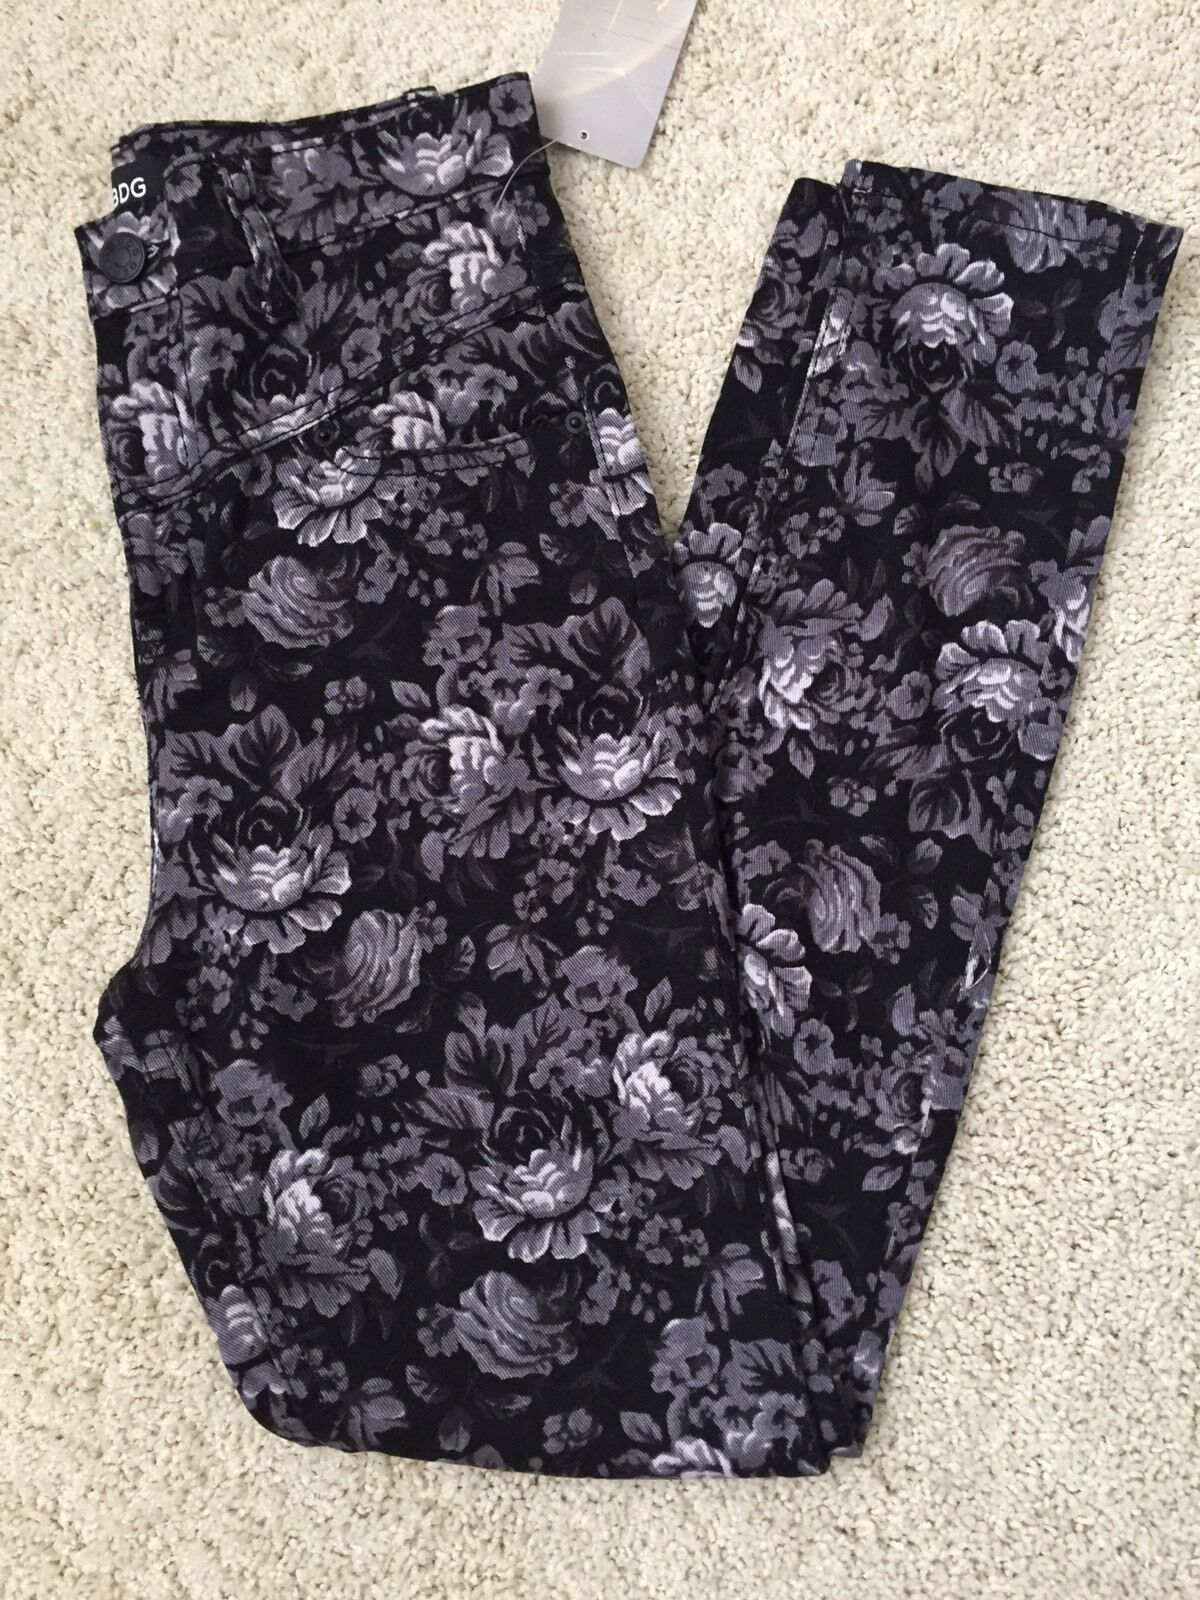 NWT BDG Floral Skinny Jeans Size 26